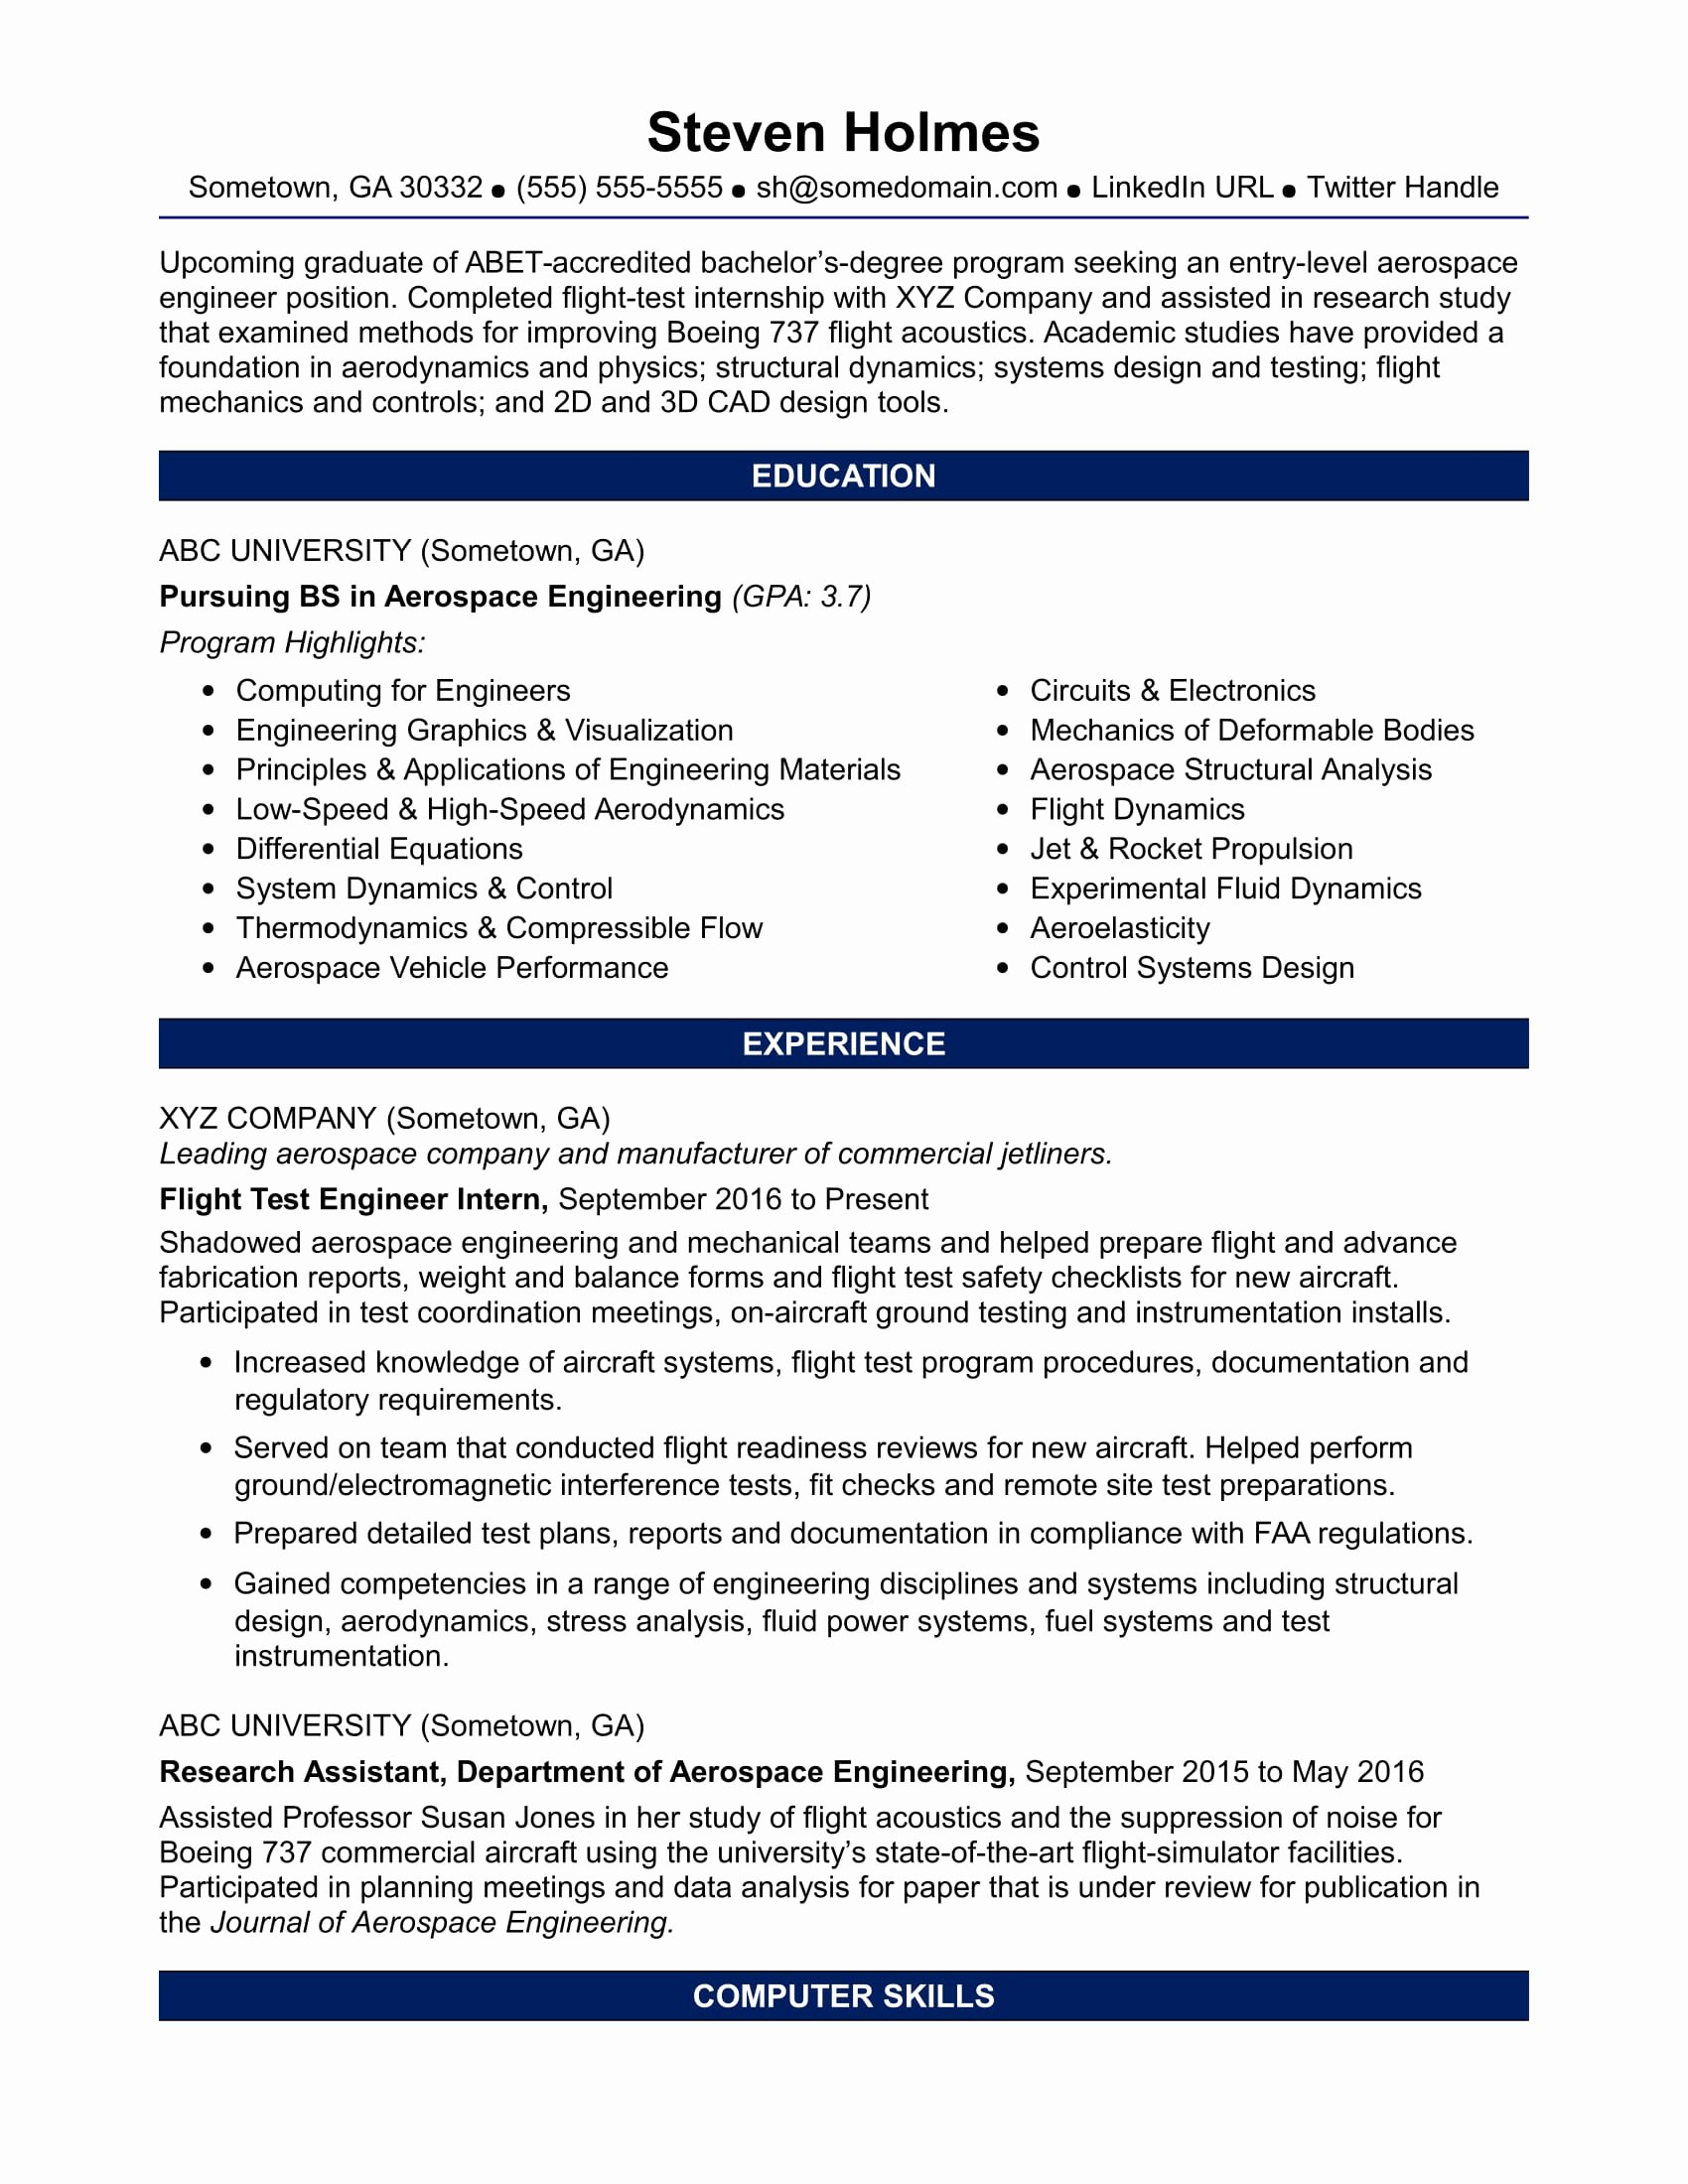 Applied Physics Letters Word Template Best Of Sample Resume for An Entry Level Aerospace Engineer